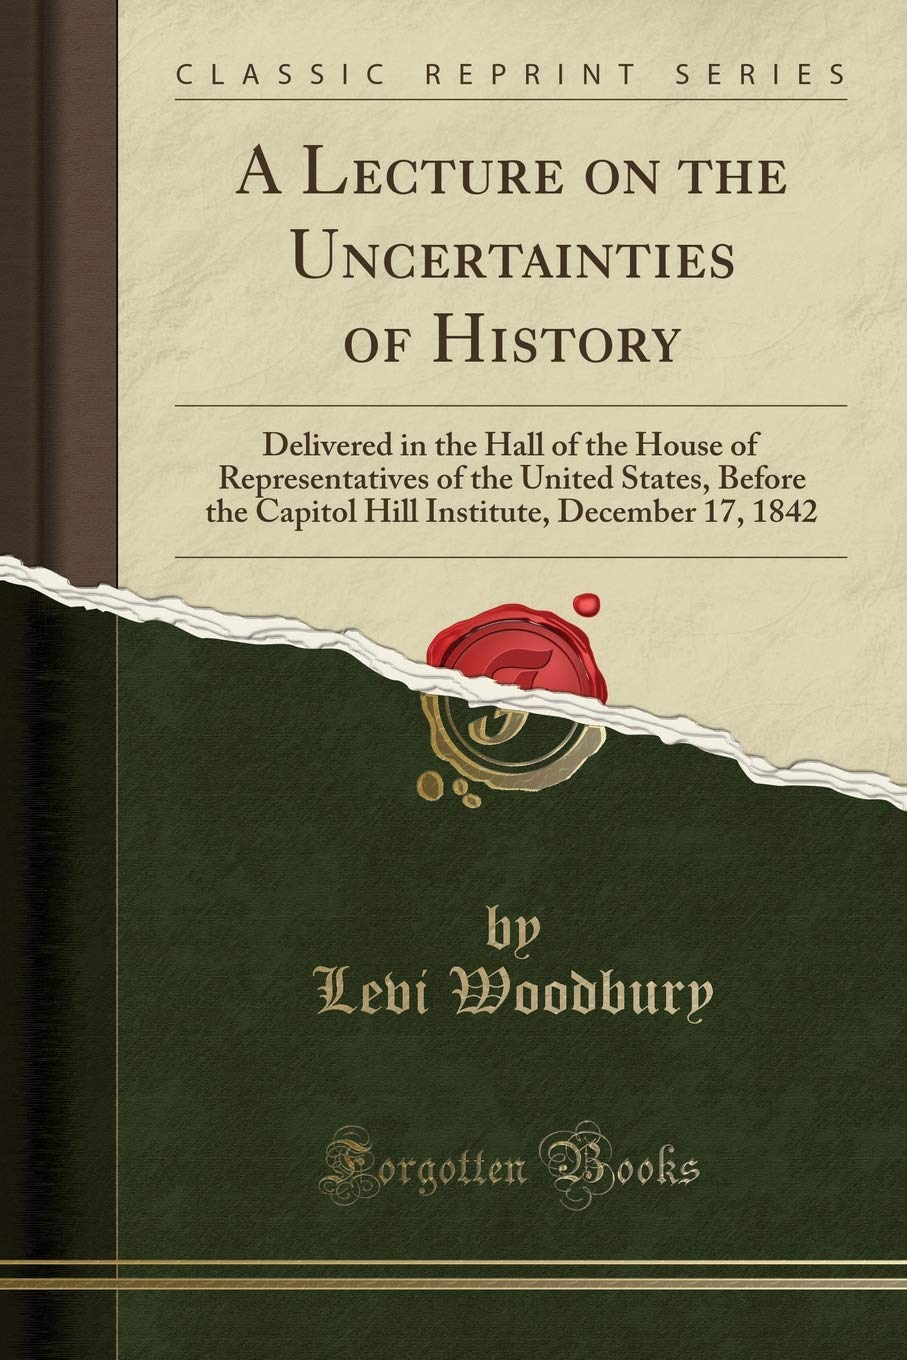 Download A Lecture on the Uncertainties of History: Delivered in the Hall of the House of Representatives of the United States, Before the Capitol Hill Institute, December 17, 1842 (Classic Reprint) PDF